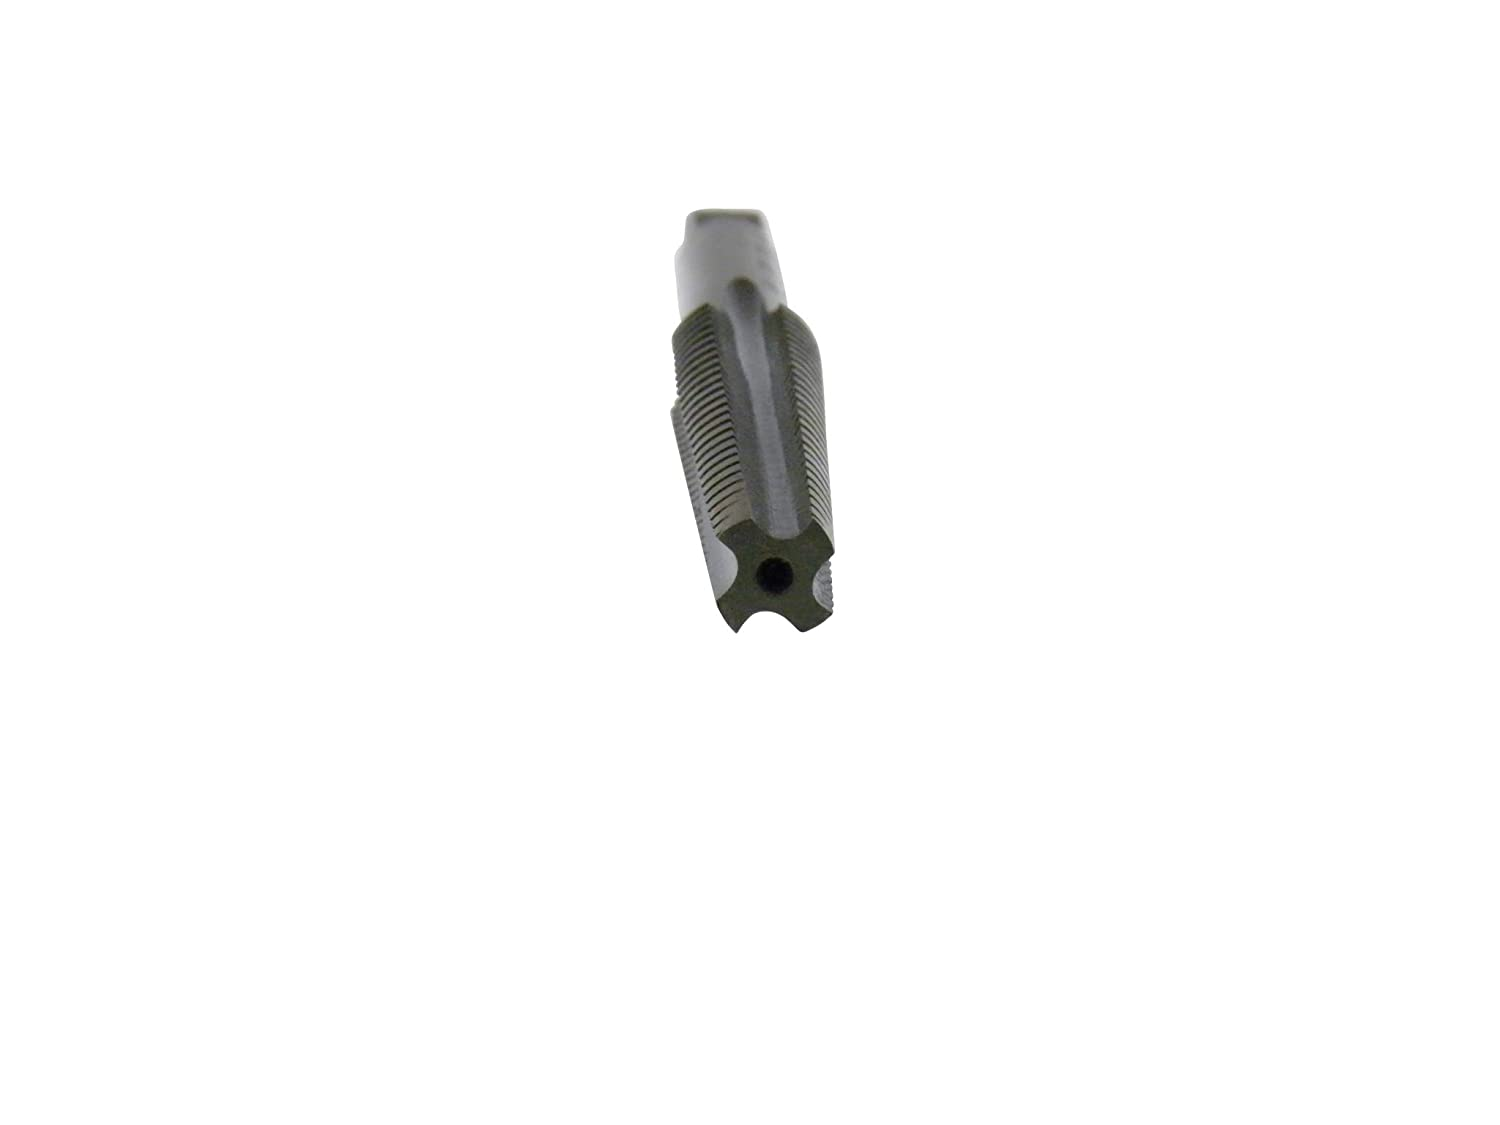 MPI Tools Acme TAP High Speed Cobalt Steel 1//2 10 TPI Right Hand Threads